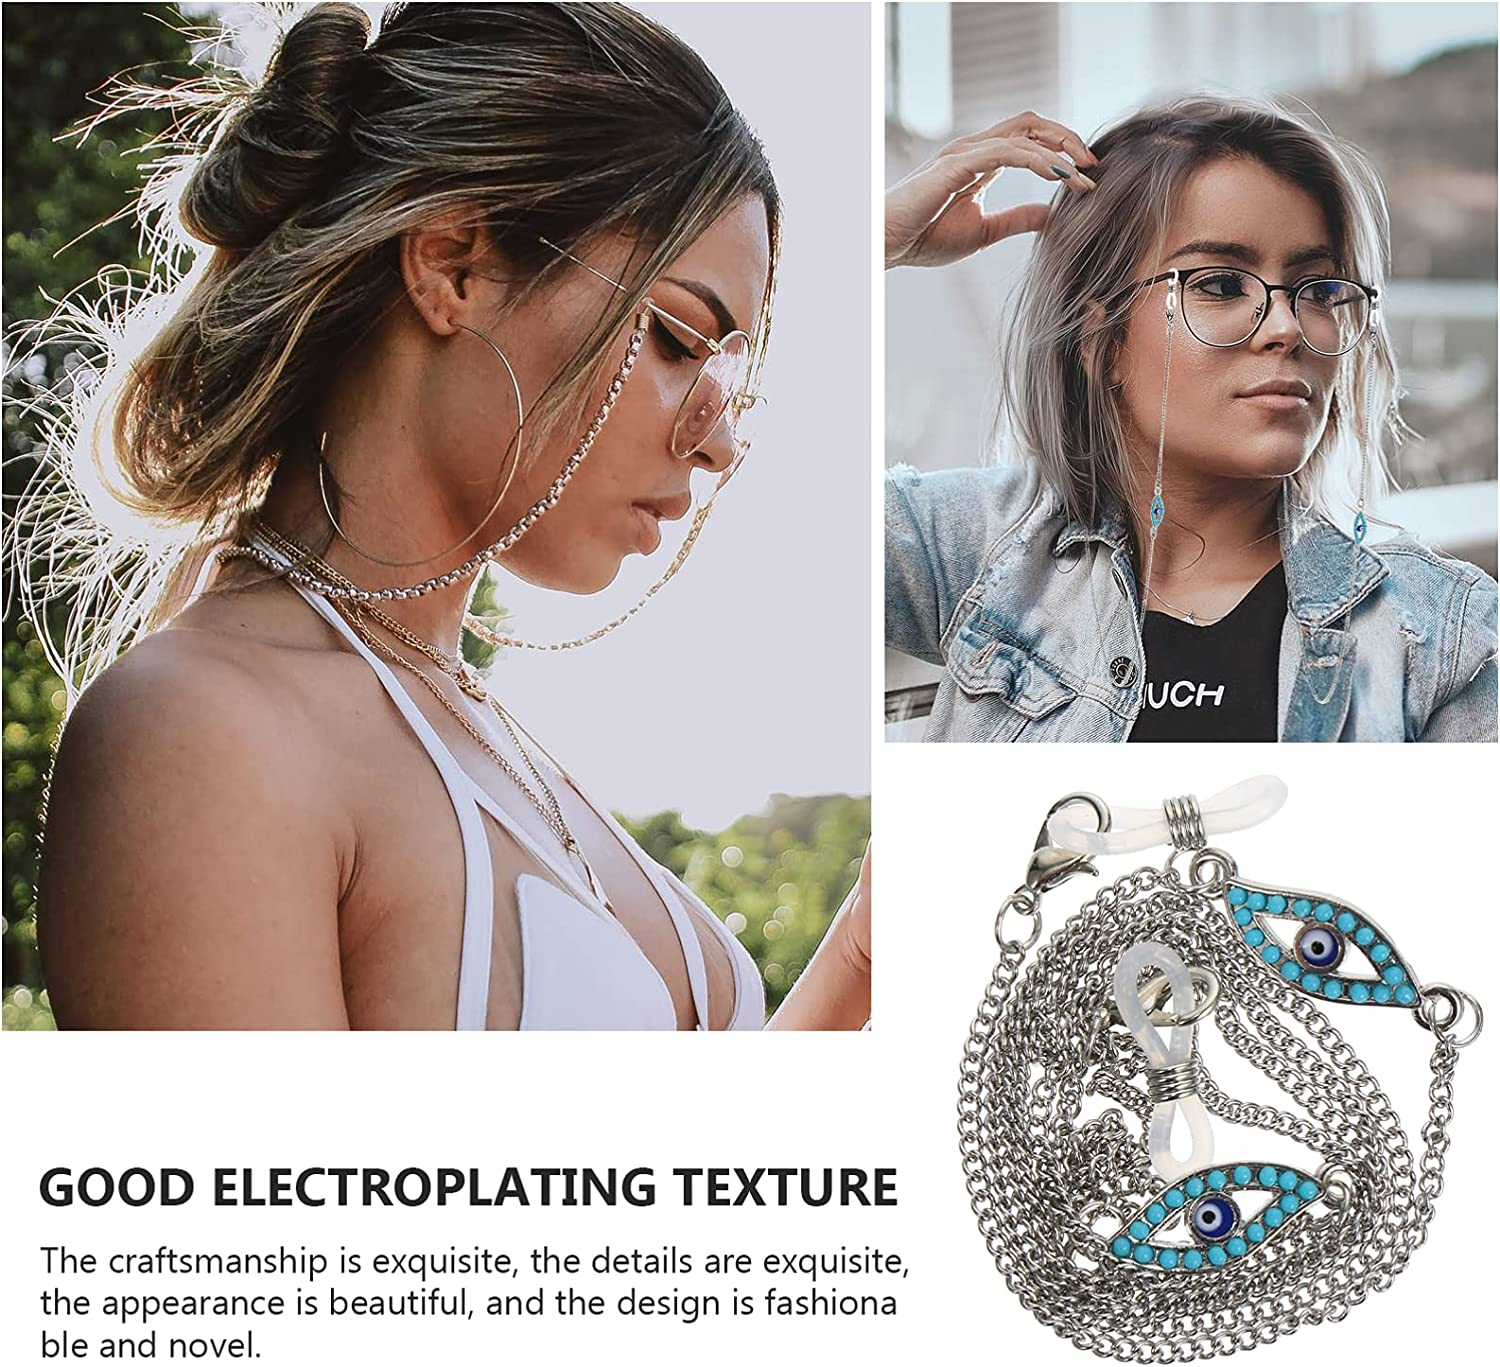 EXCEART Eyeglass Lanyard Chain Sunglass Holder Strap Eyeglass Necklace Chain Cord Face Cover Lanyard Anti- Lost Face Bandanas Chain for Glasses Face Cover